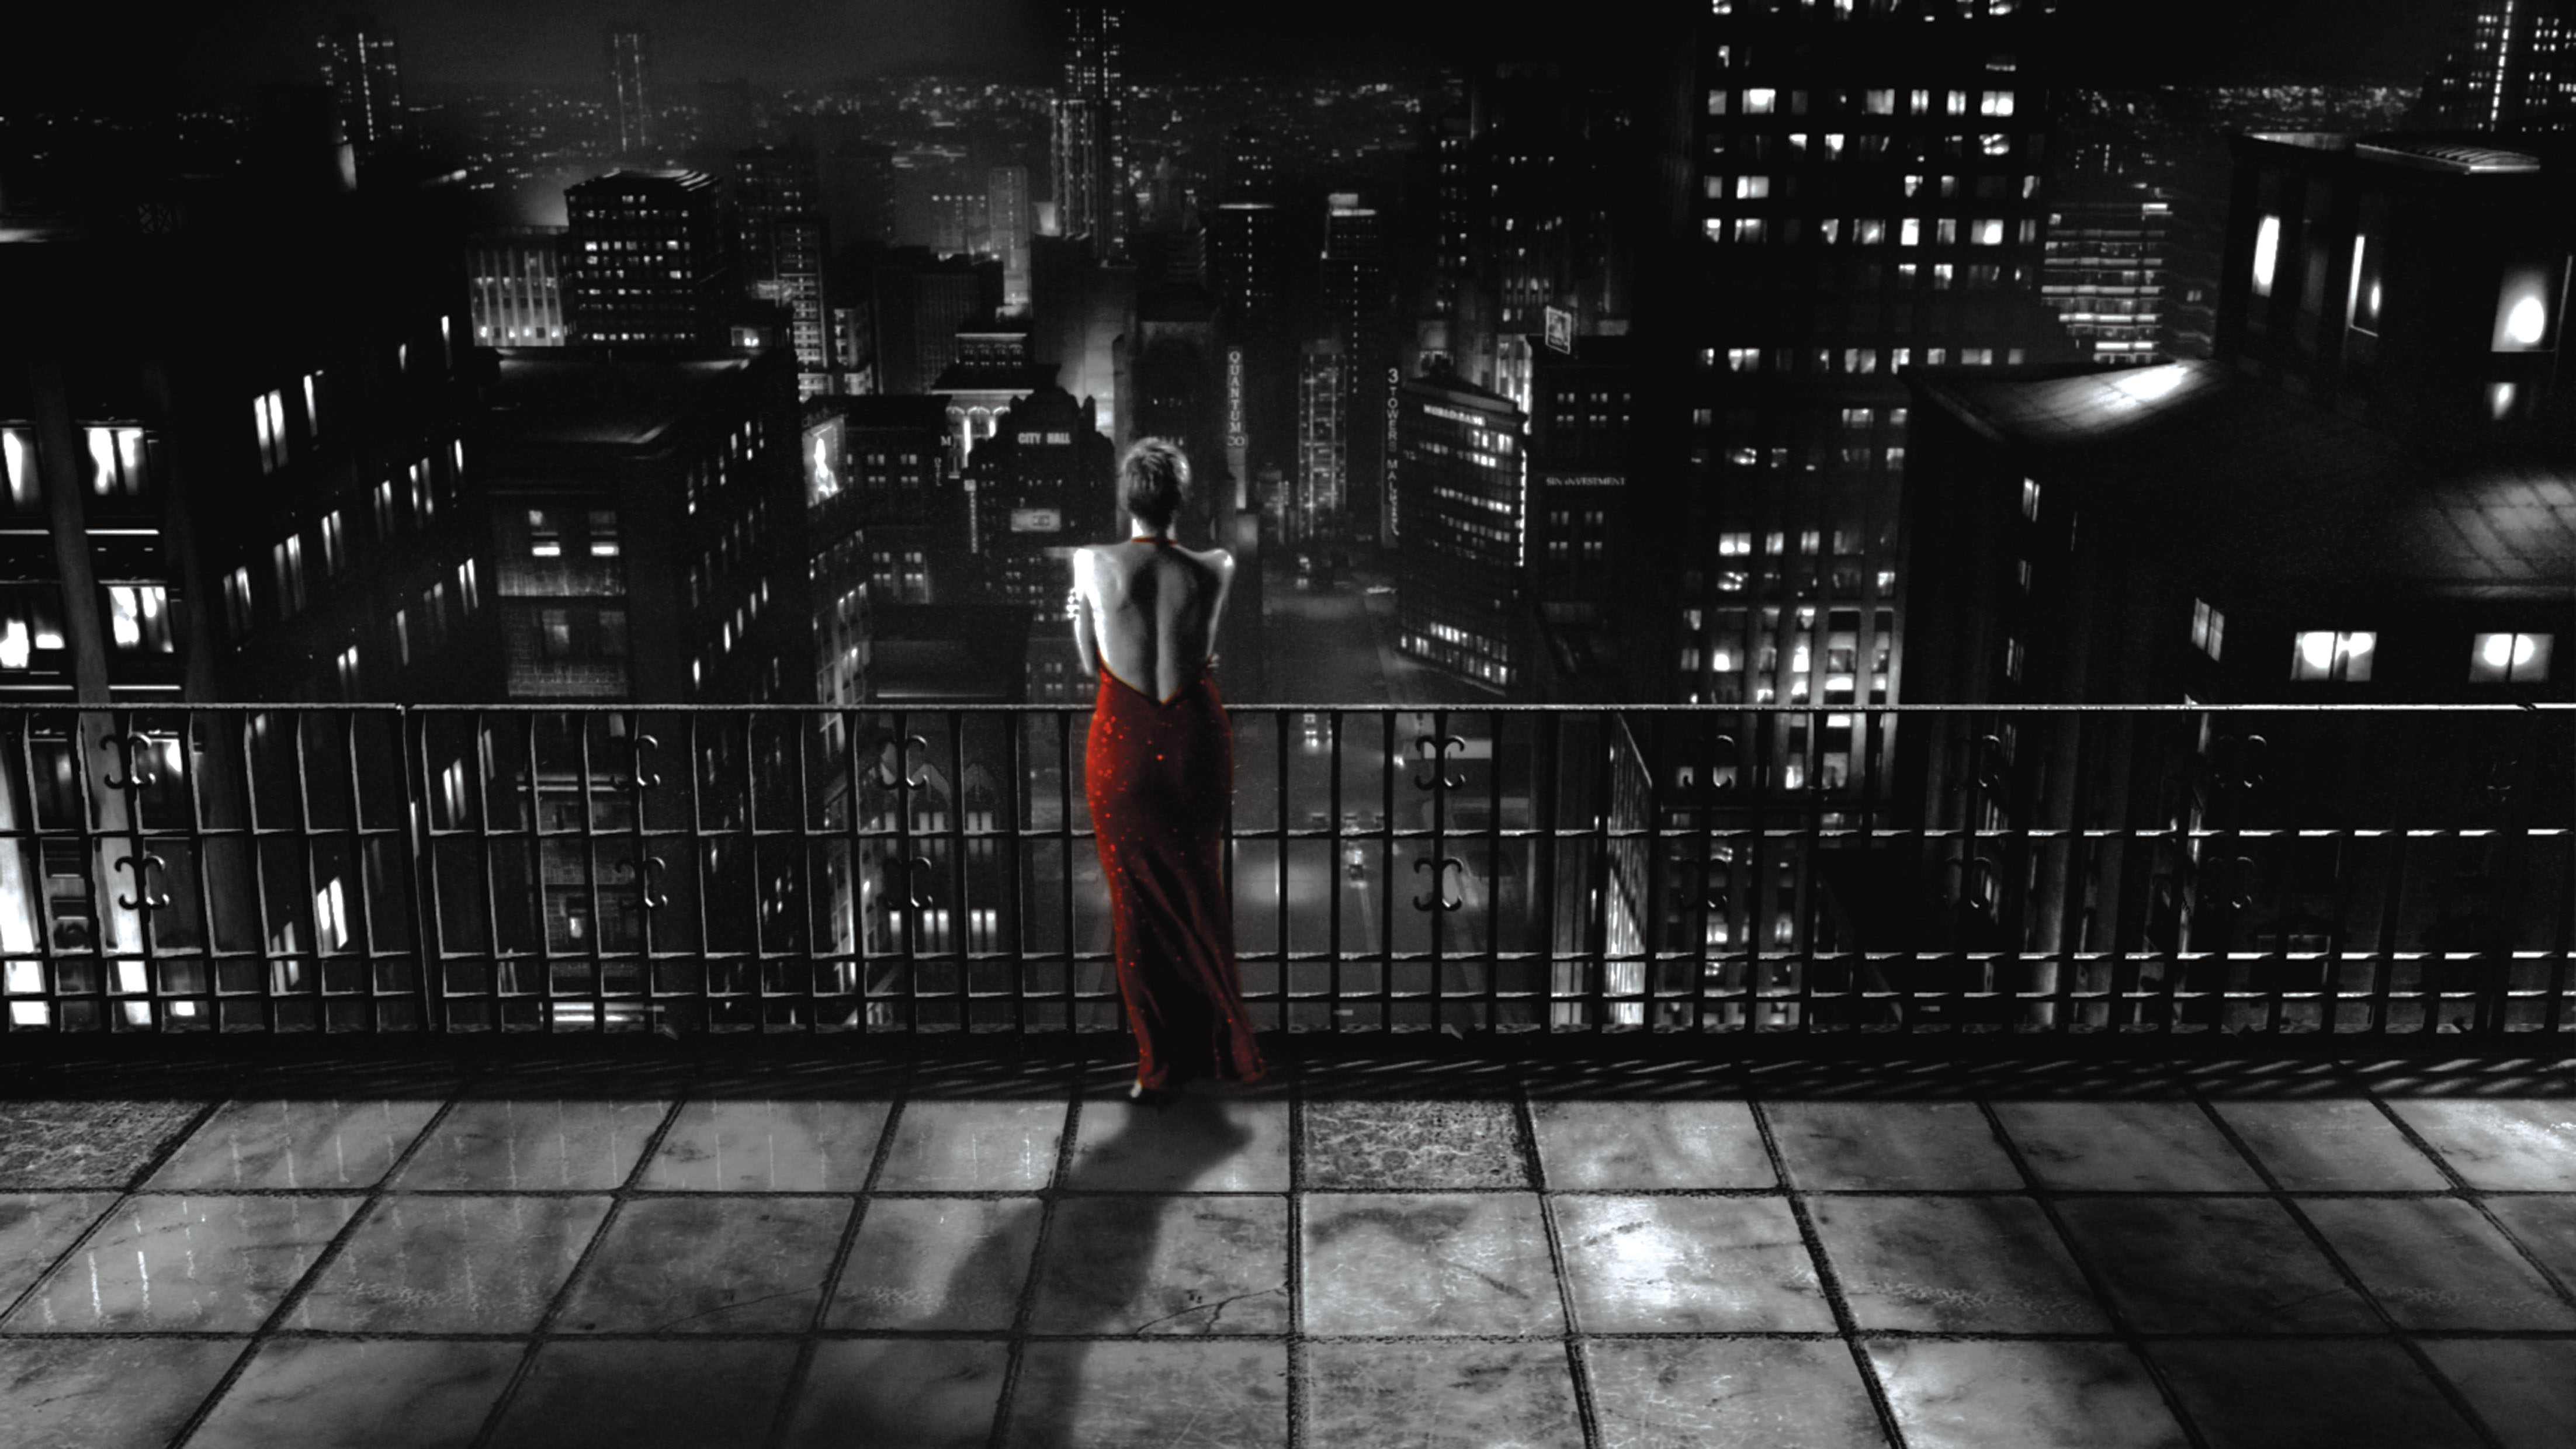 sin city blurs media genre and style � academic � movie fail